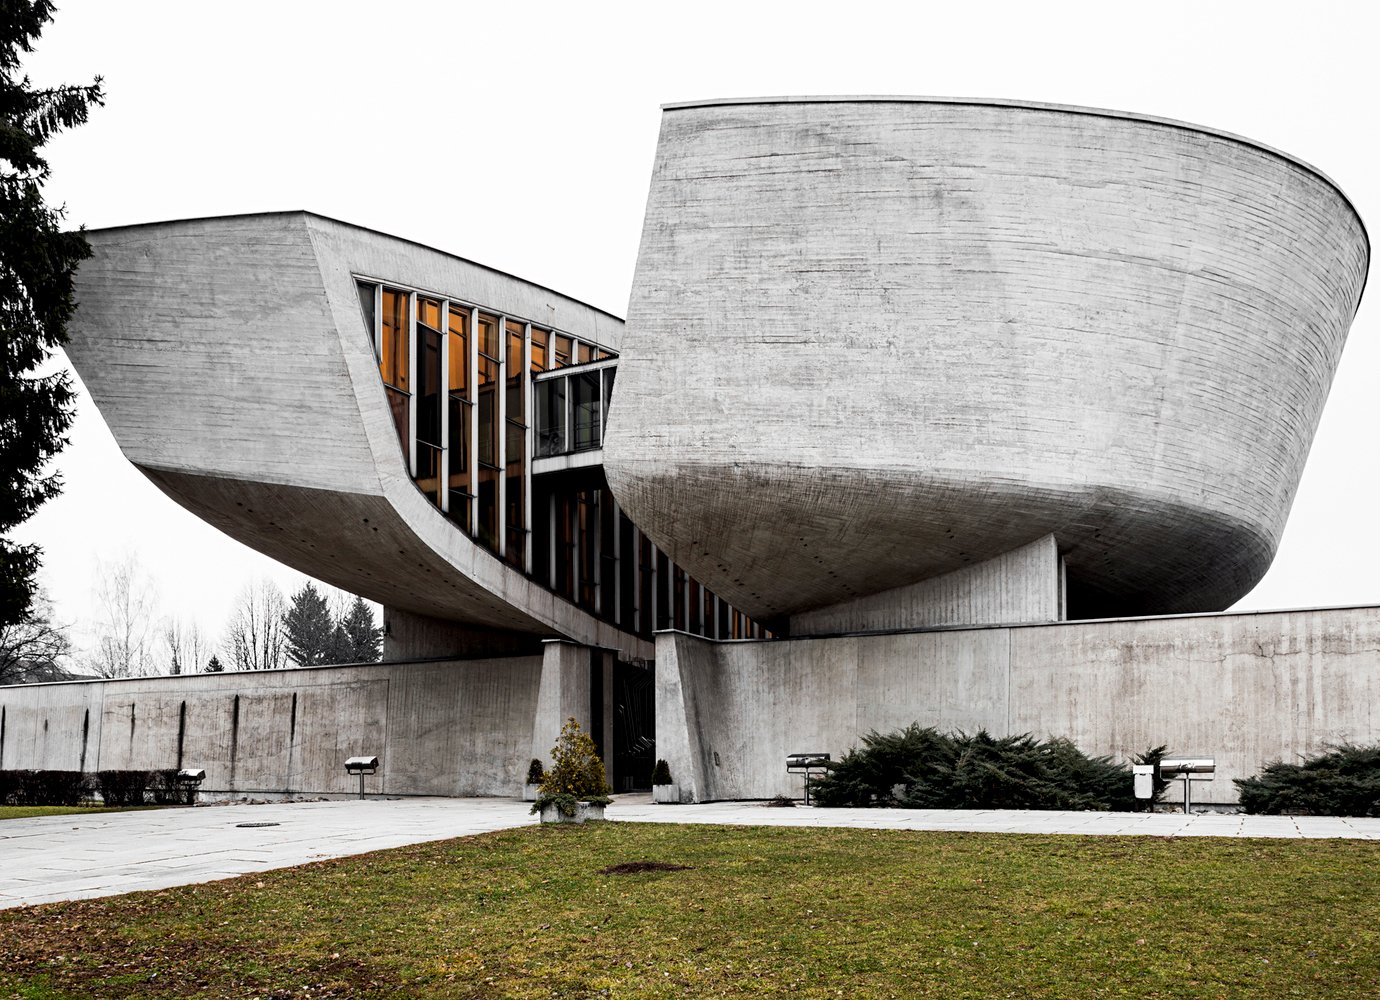 How Slovakia's Soviet ties led to a unique form of sci-fi architecture